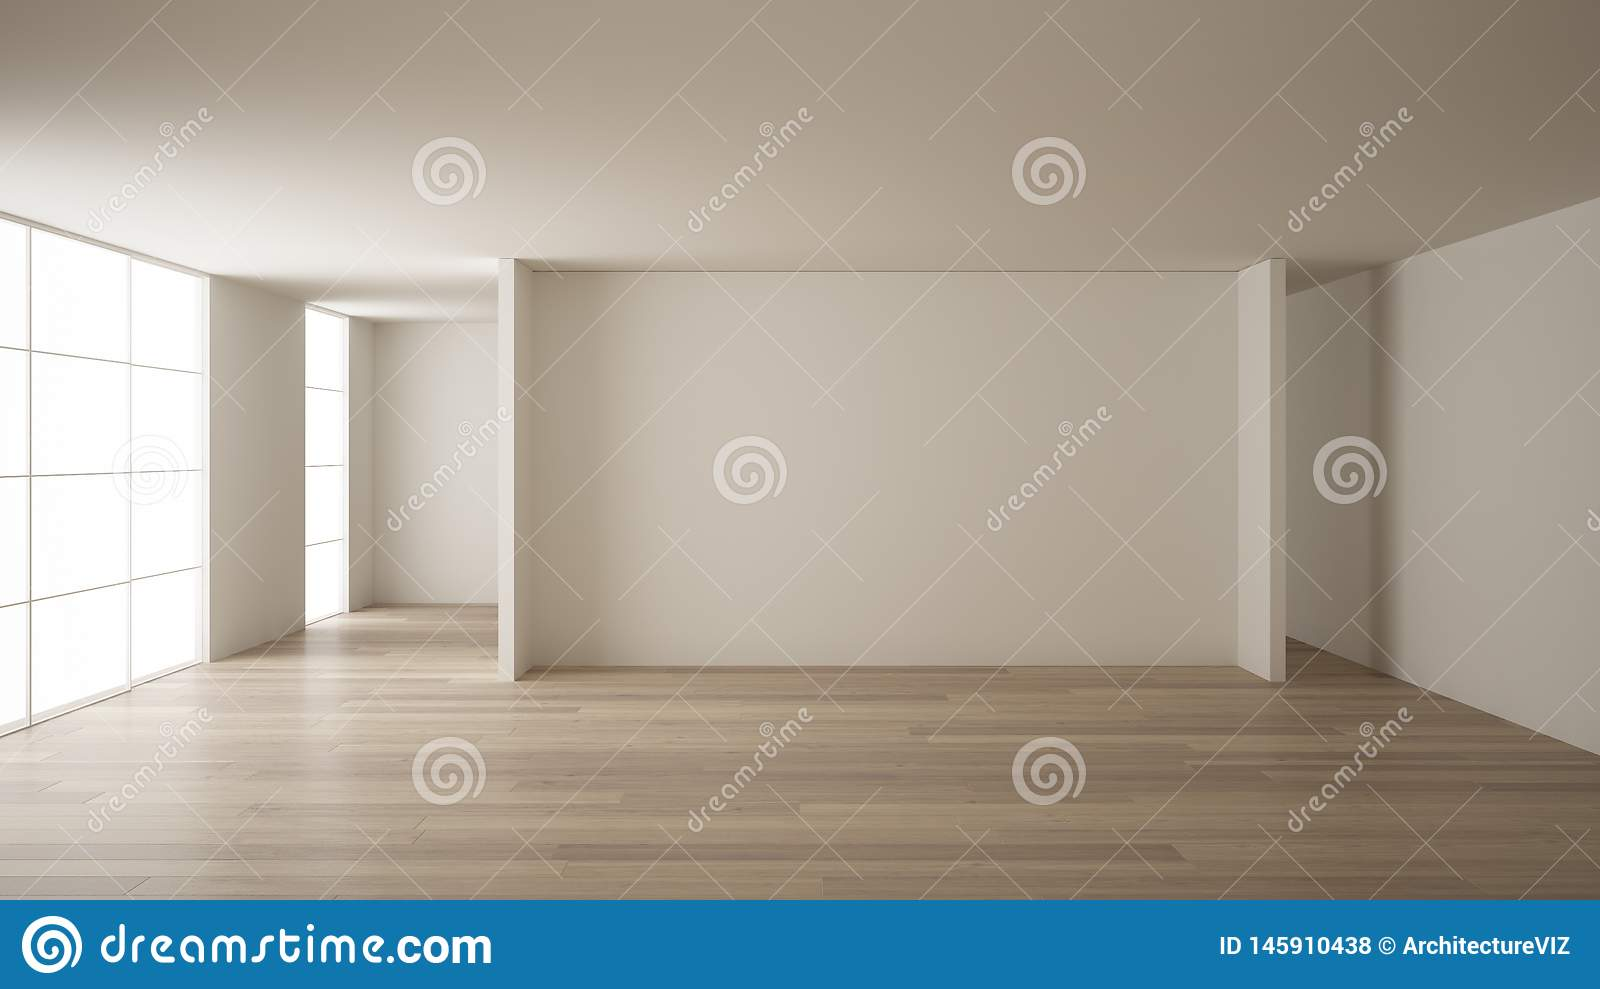 . Empty Room Interior Design  Open Space With White Walls  Modern